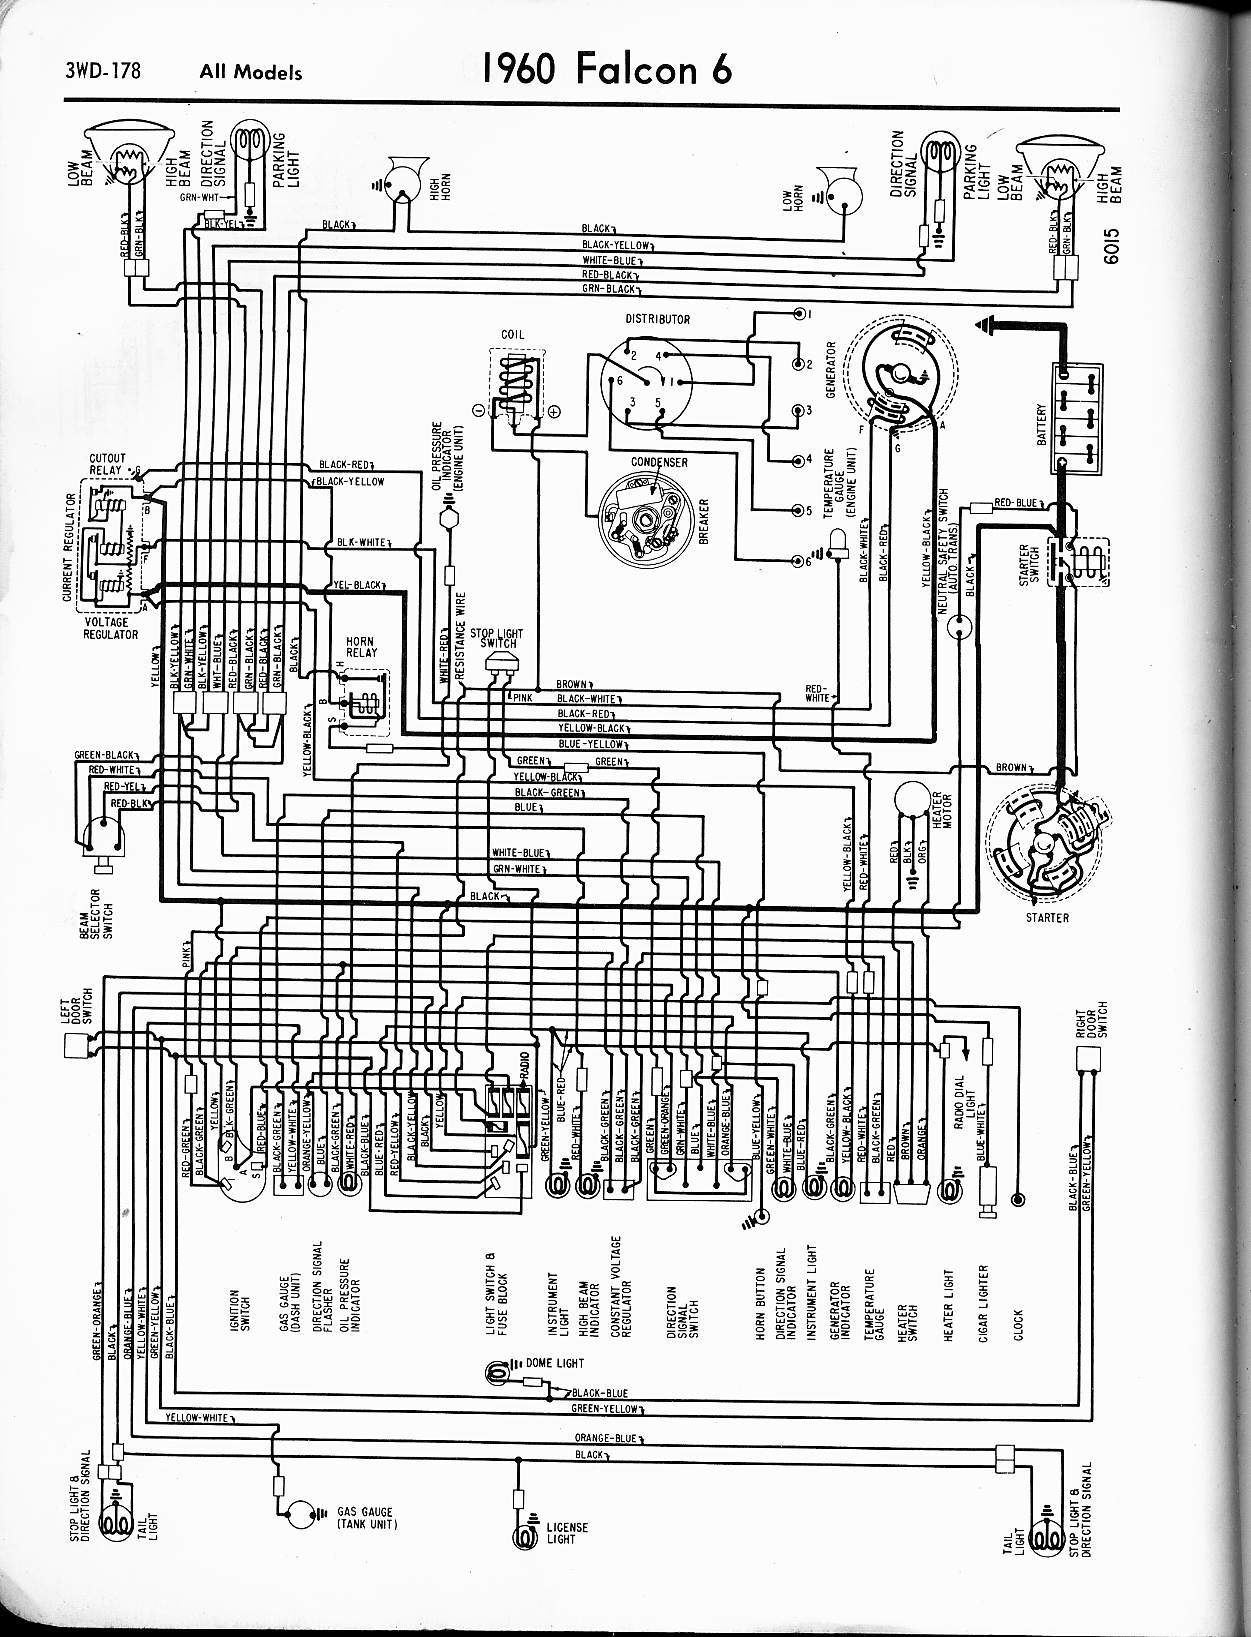 [WRG-5624] 1994 Chevy Astro Wiring Diagram Free Download